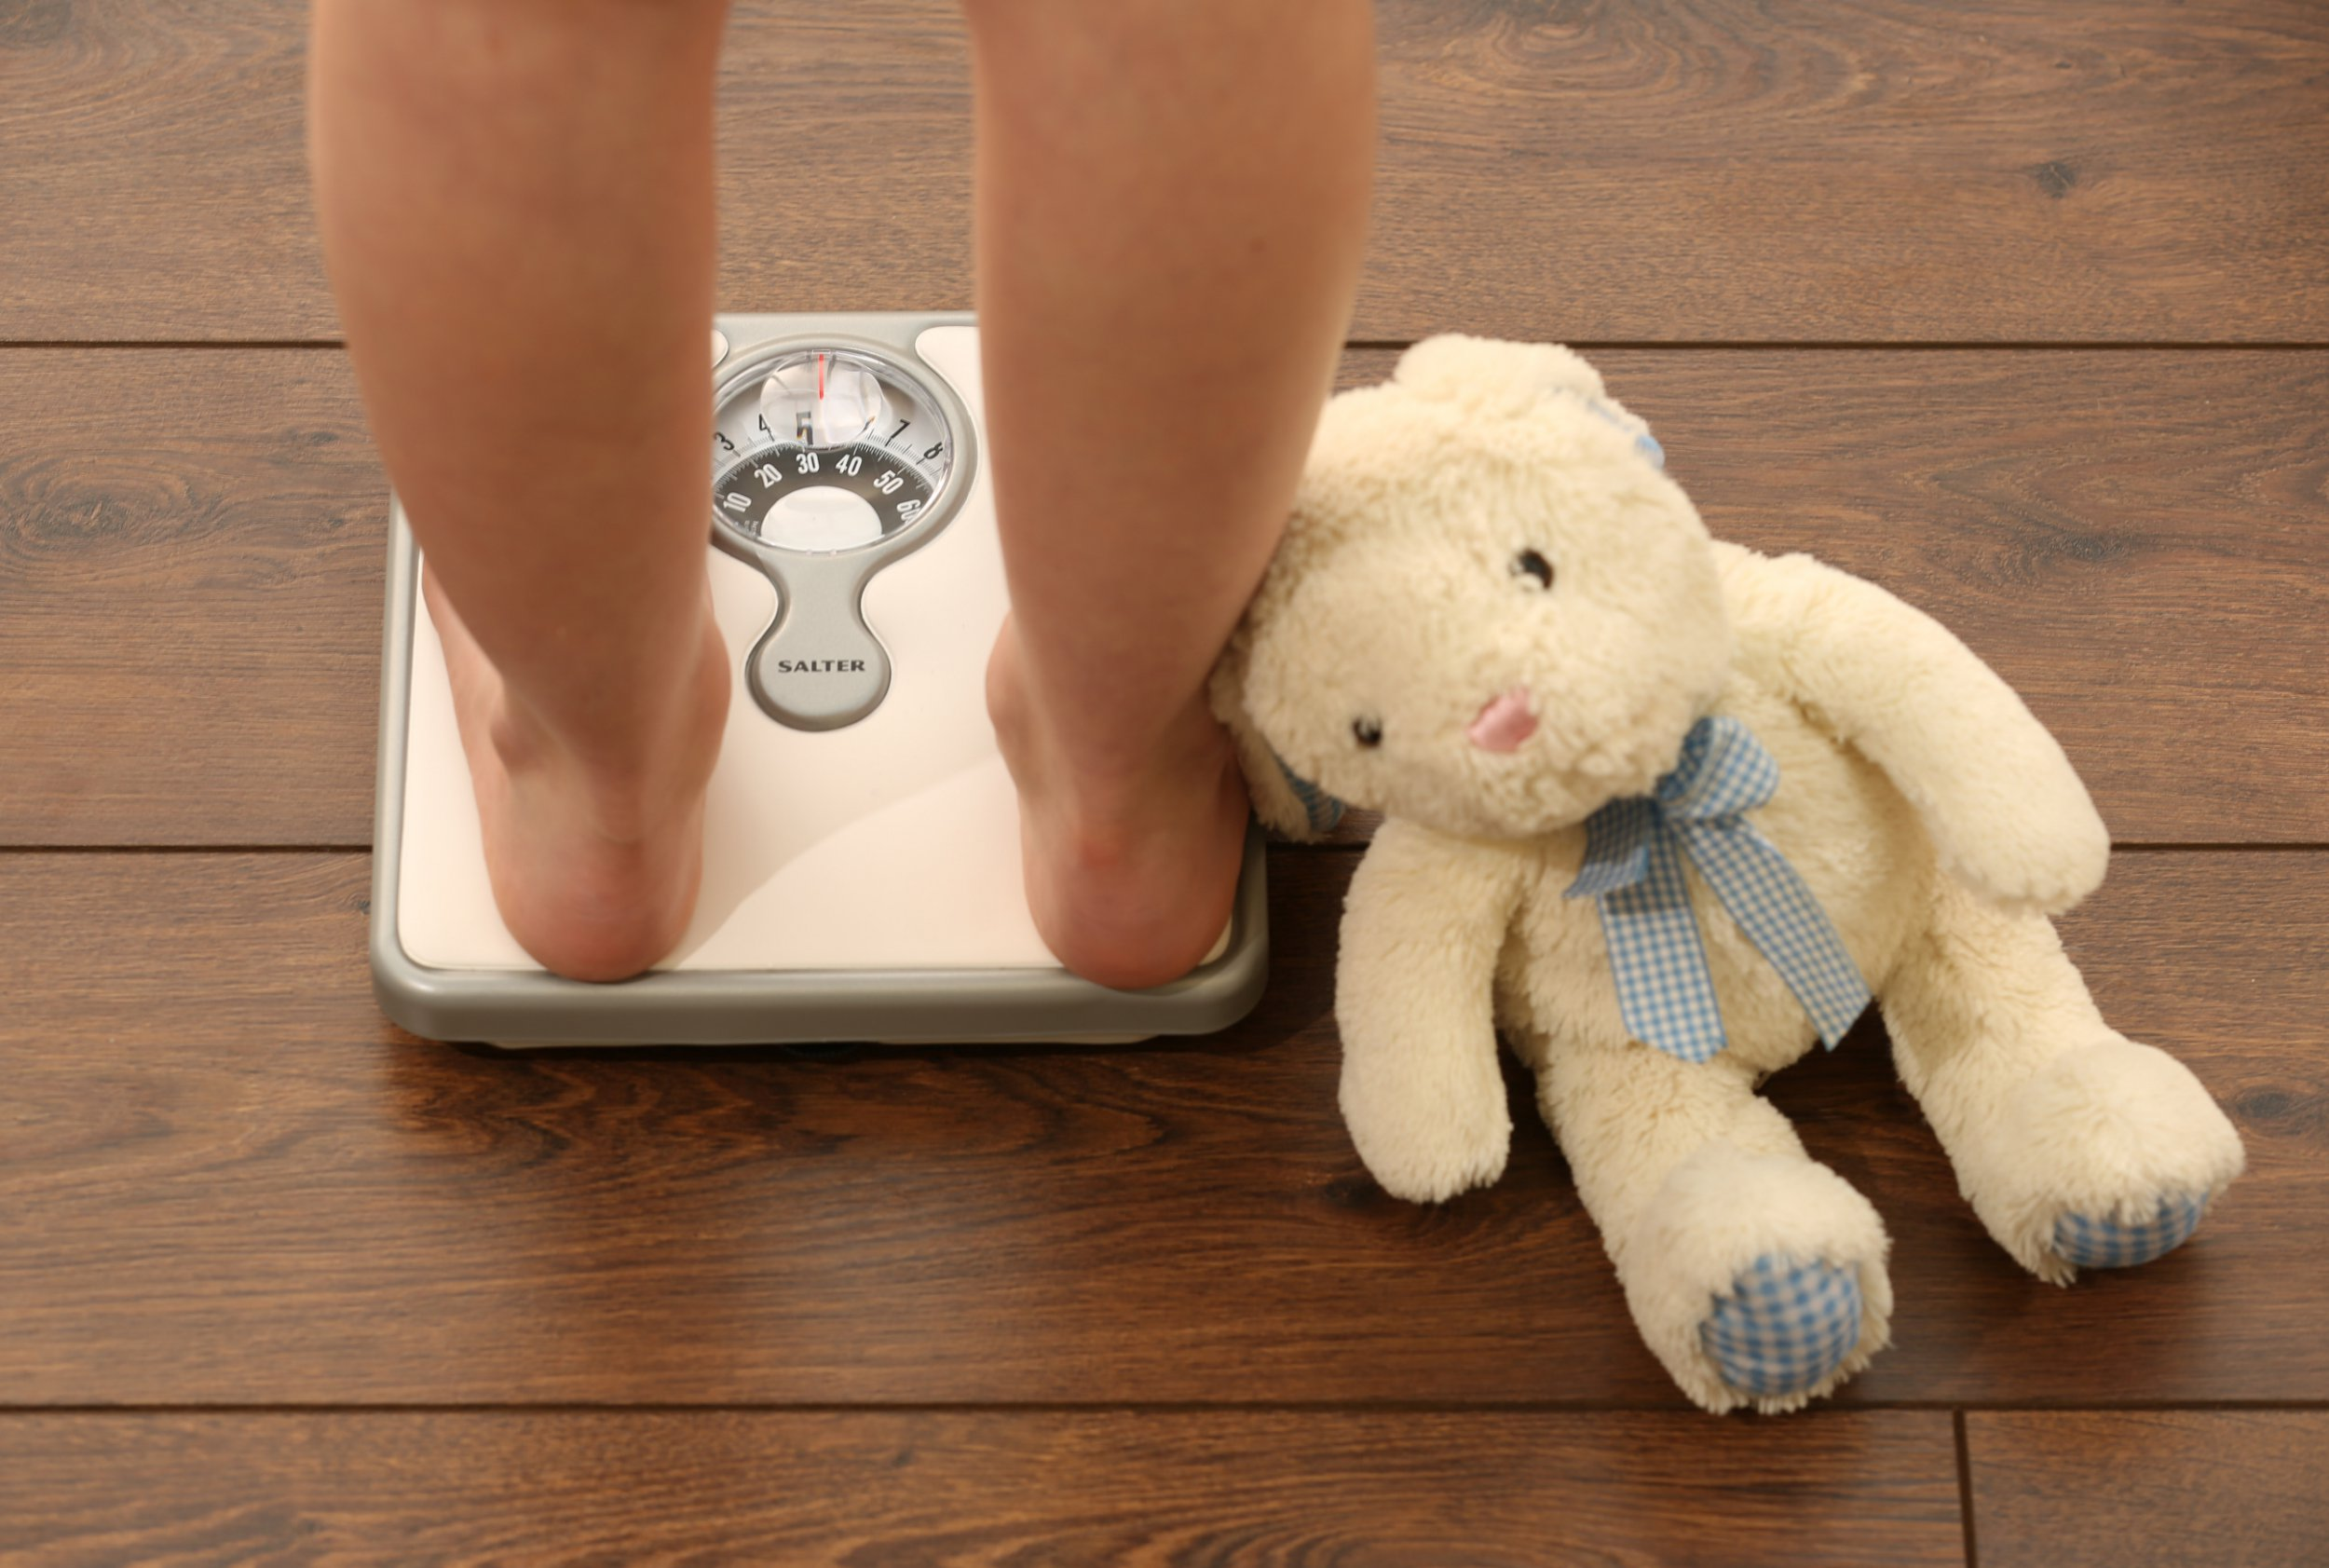 Number of obese children soars to record high